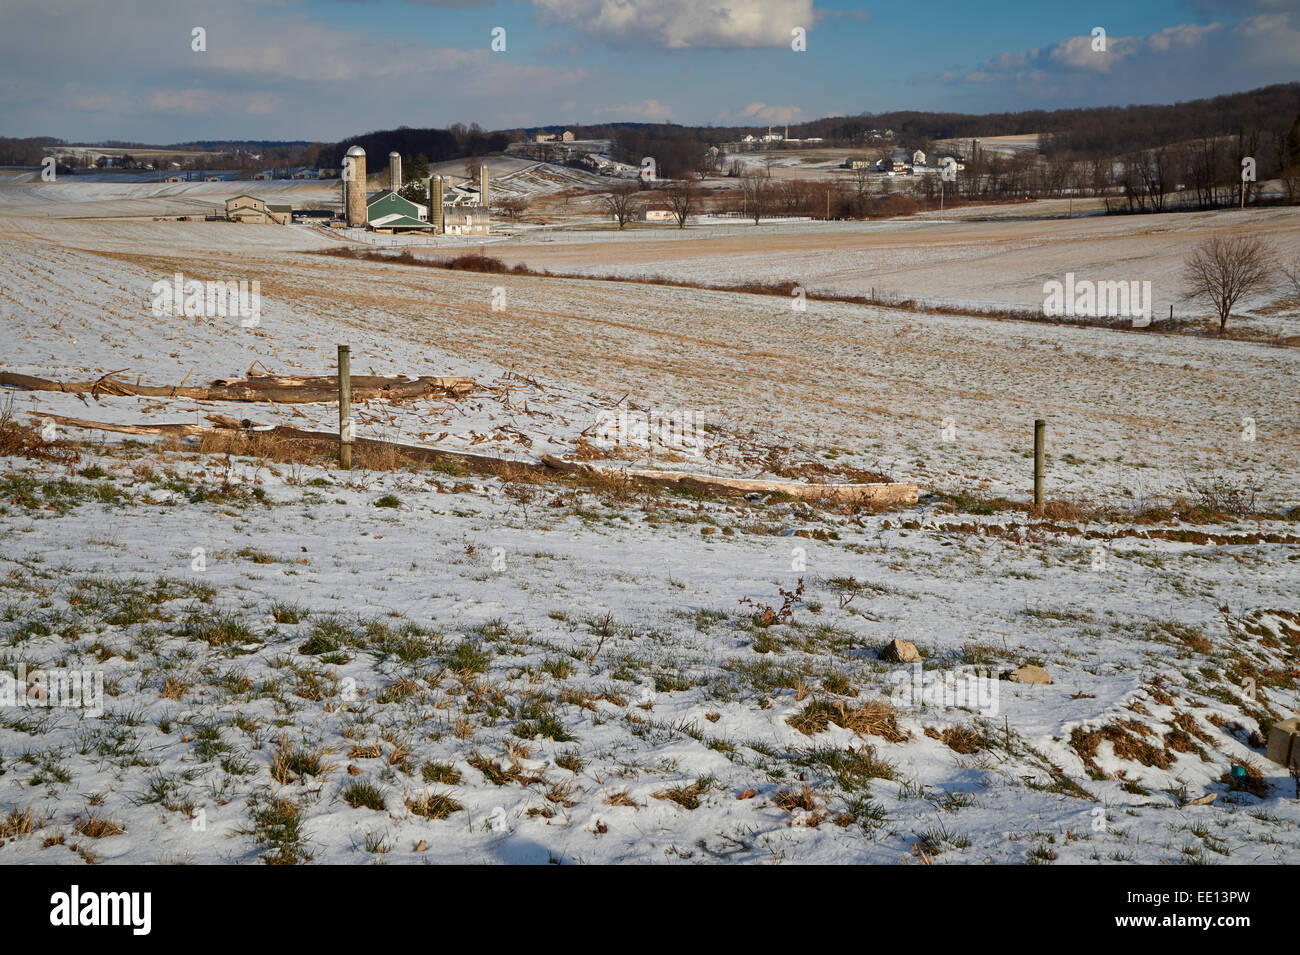 early snow cover, Lancaster, PA, USA - Stock Image